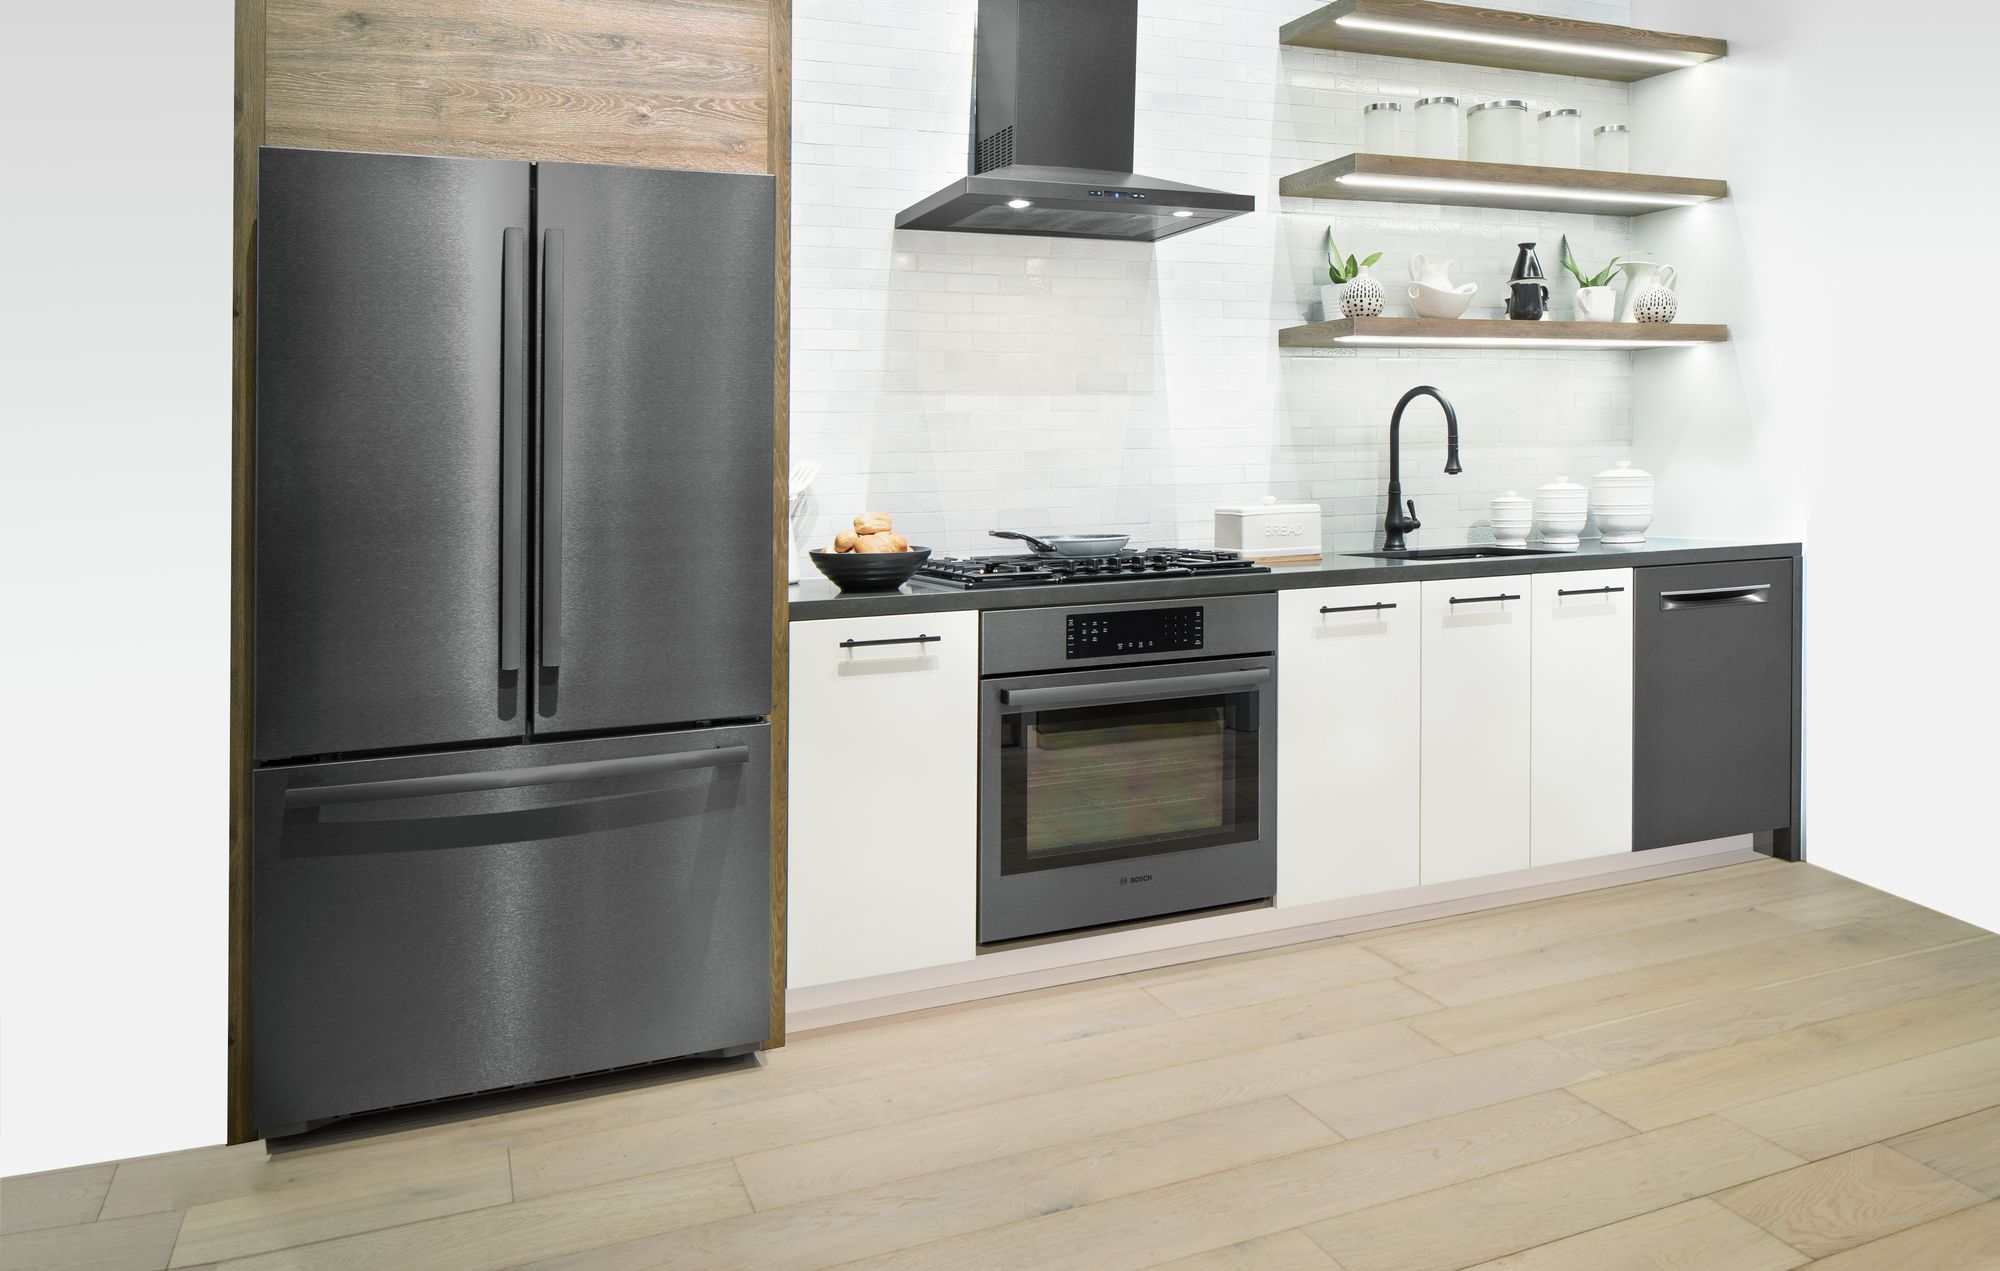 5 Reasons To Get A Black Stainless Steel Kitchen Set From Bosch